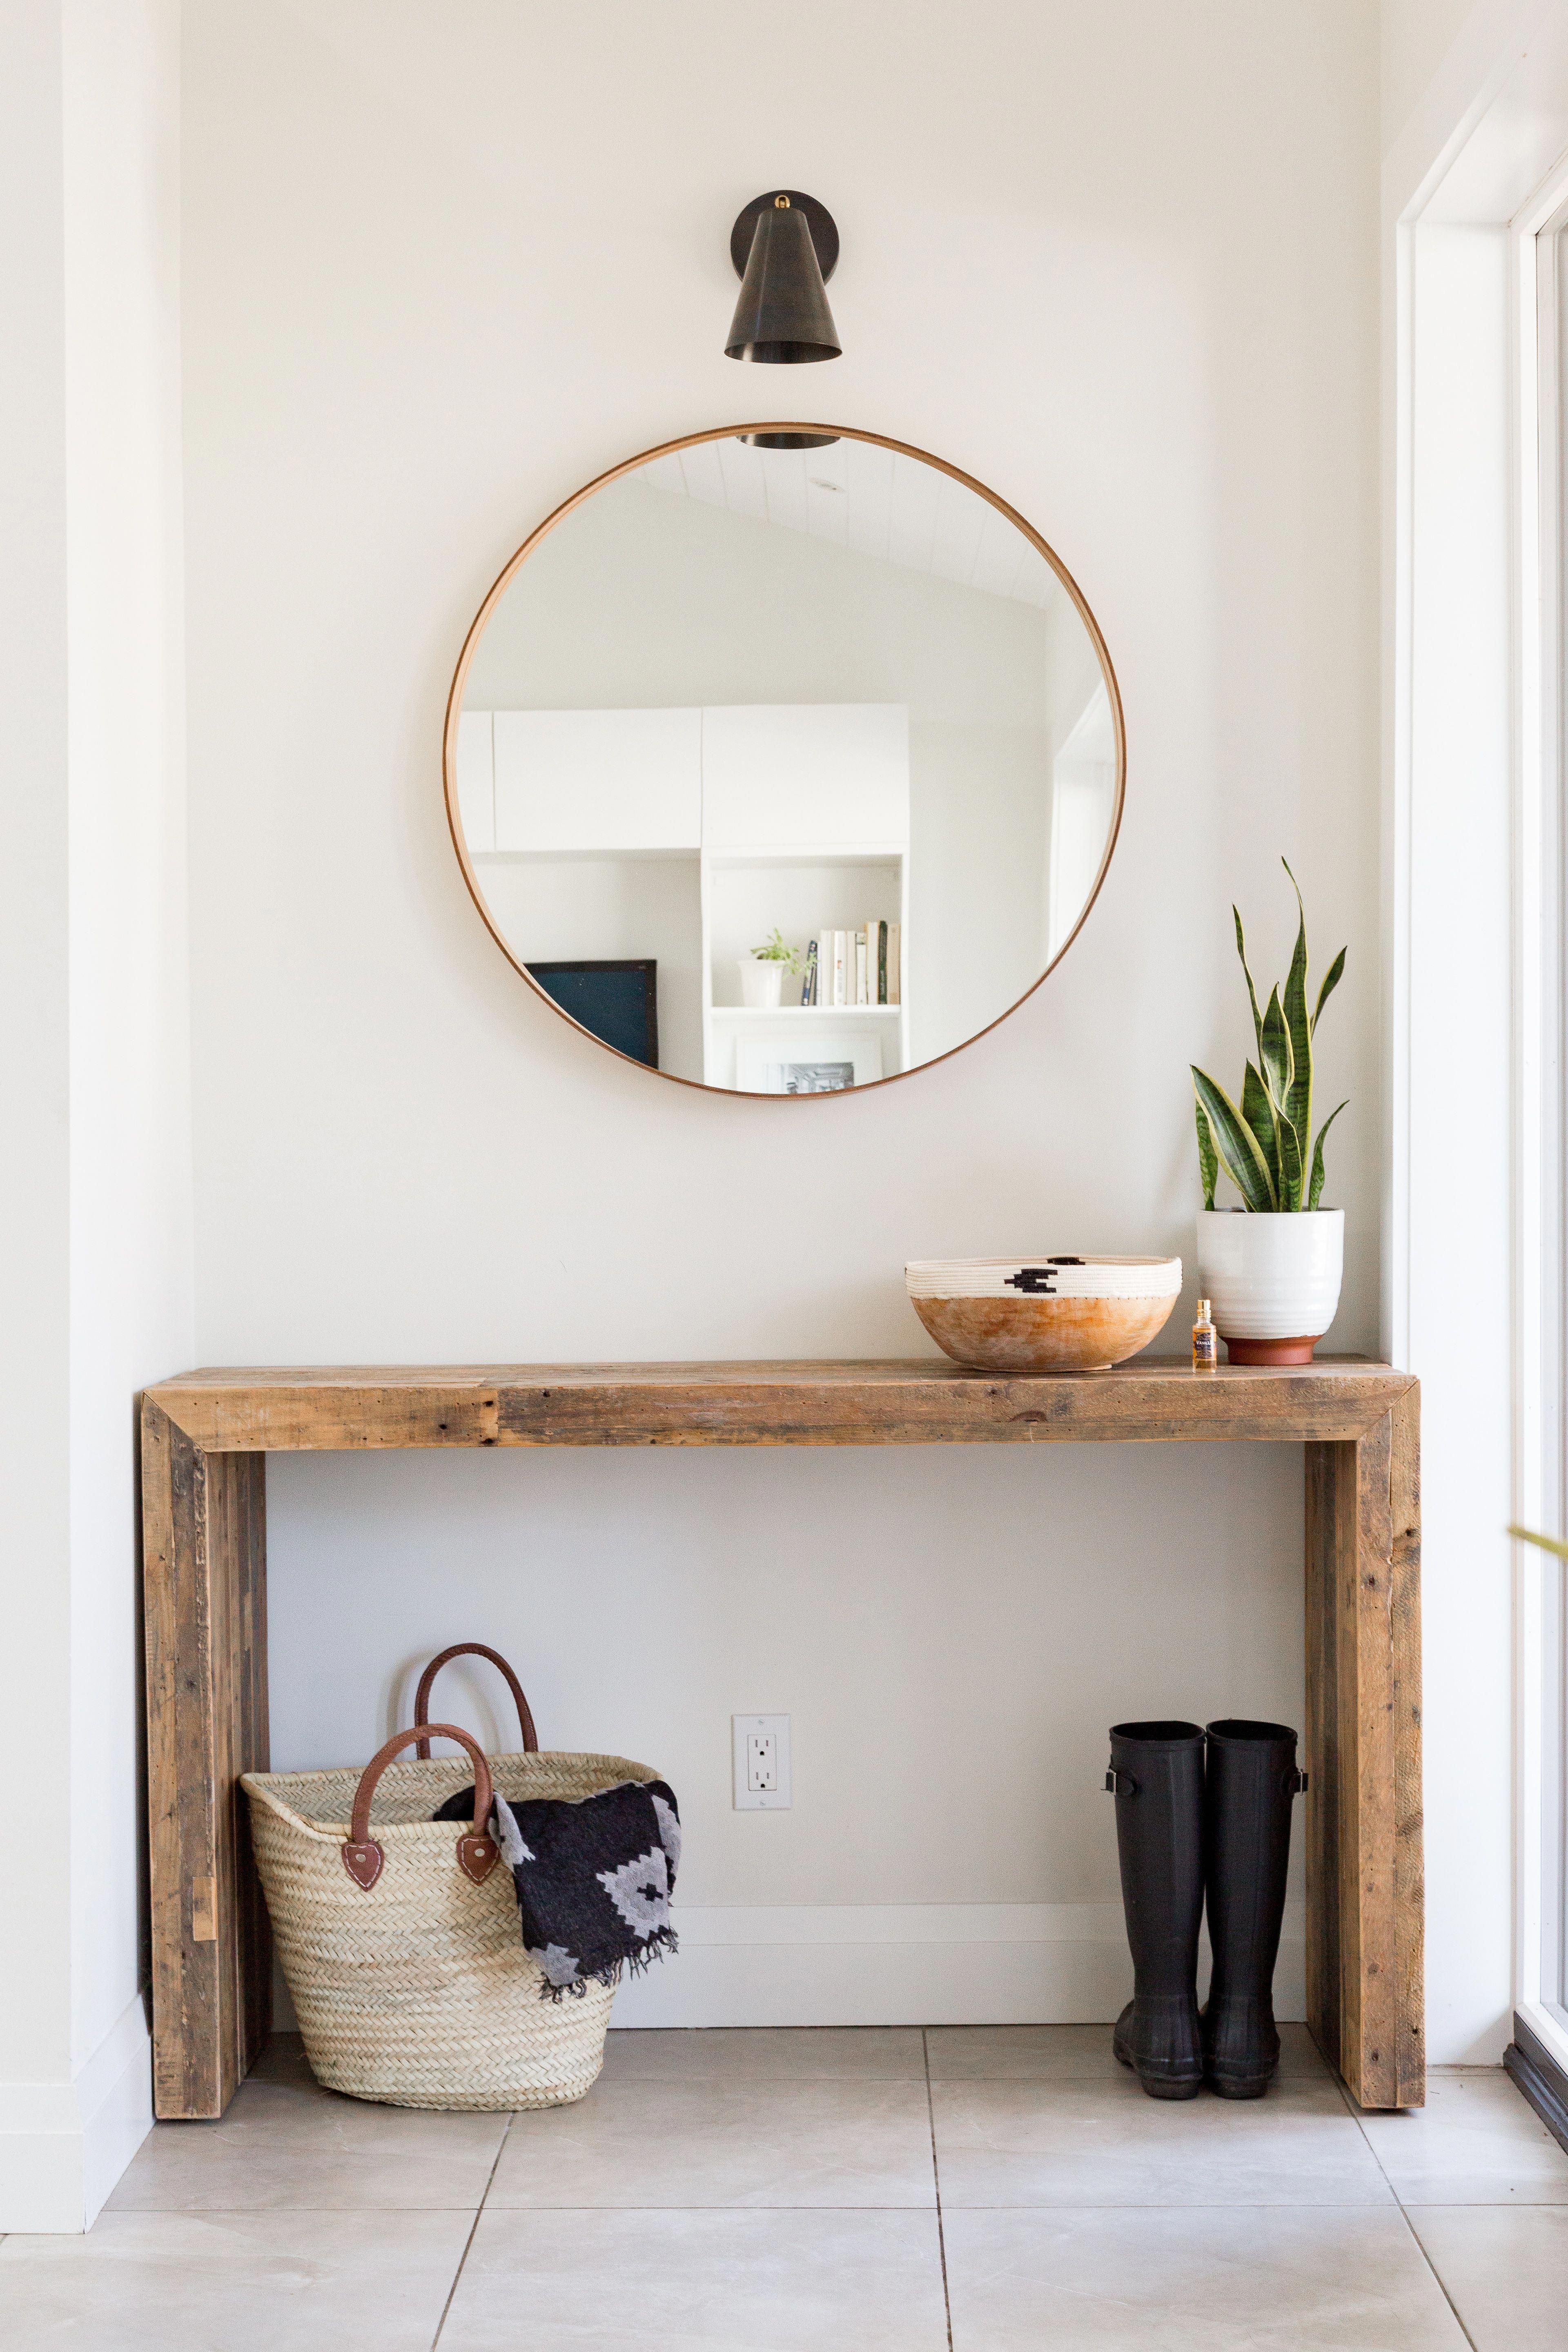 Rustic Meets Modern Front Entrance Design With Console Table And Round Mirror Modernhomedecorinteri Home Decor Inspiration Entrance Decor Front Entrance Decor